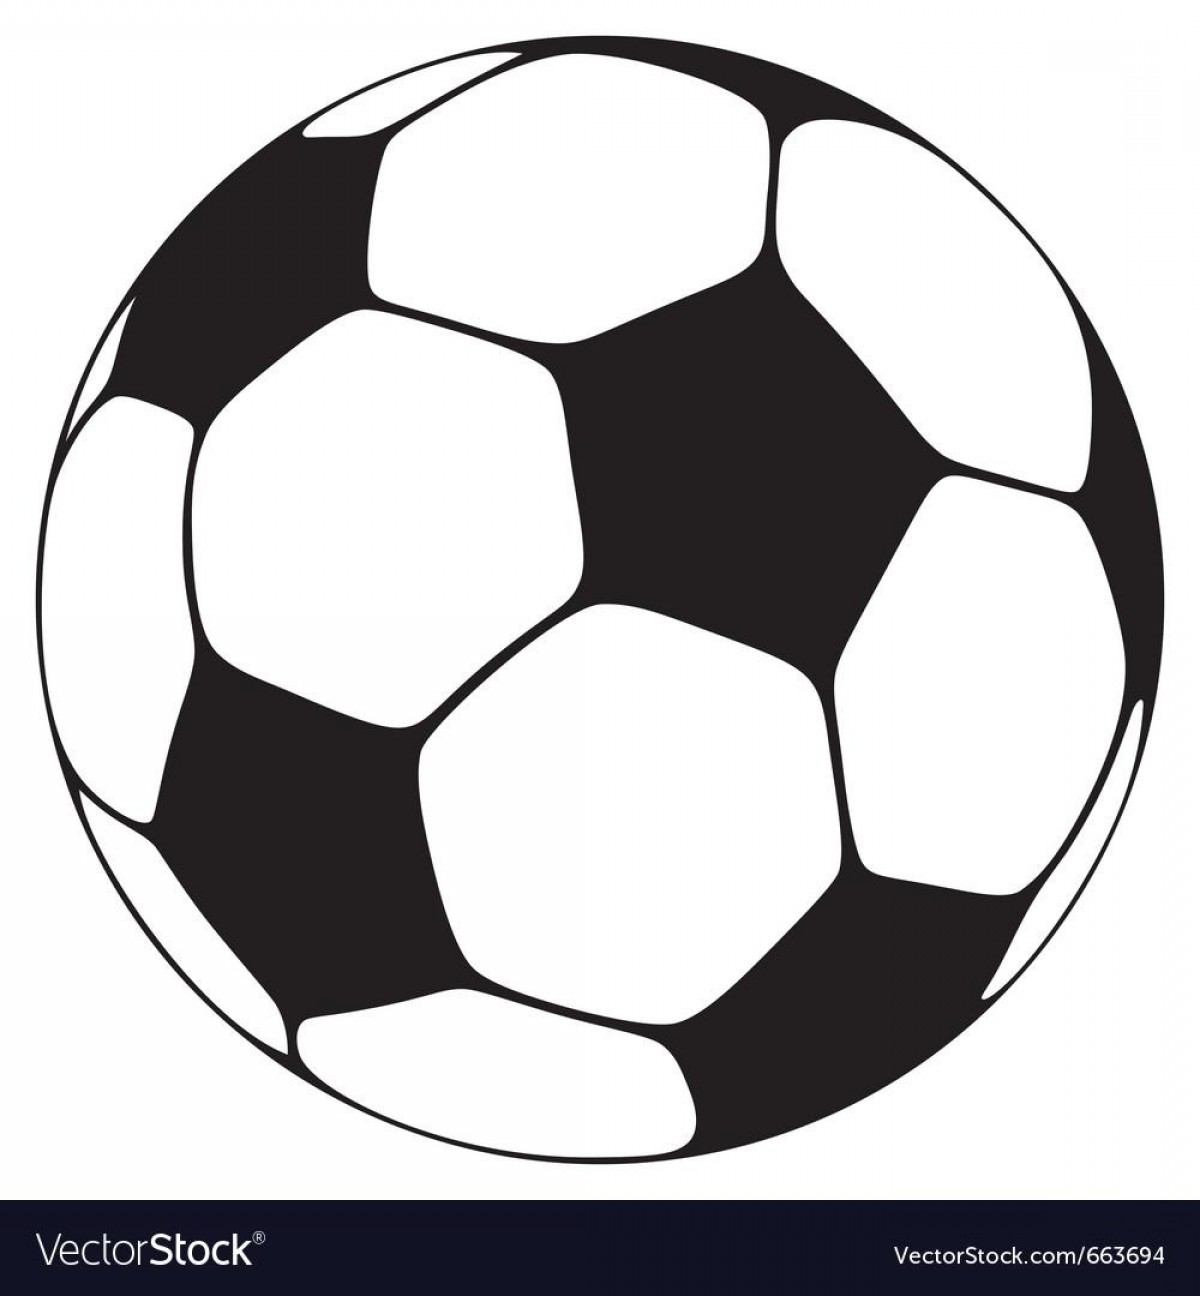 Ball Clip Art Soccer Ball Free Vector Free Transparent Png.